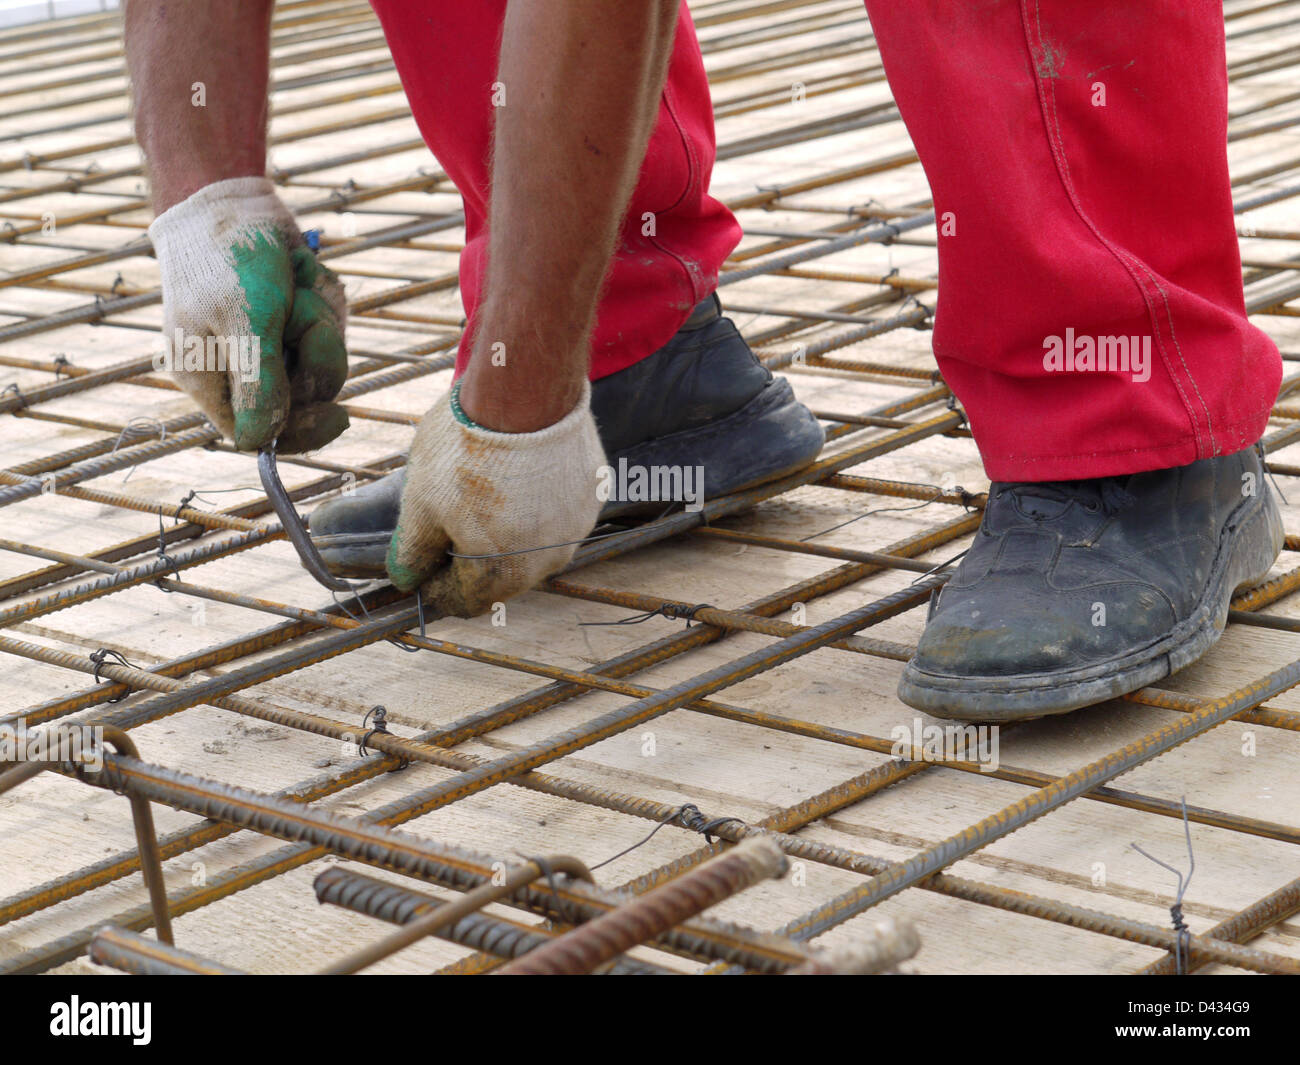 Steel Bar Hands Stockfotos & Steel Bar Hands Bilder - Alamy